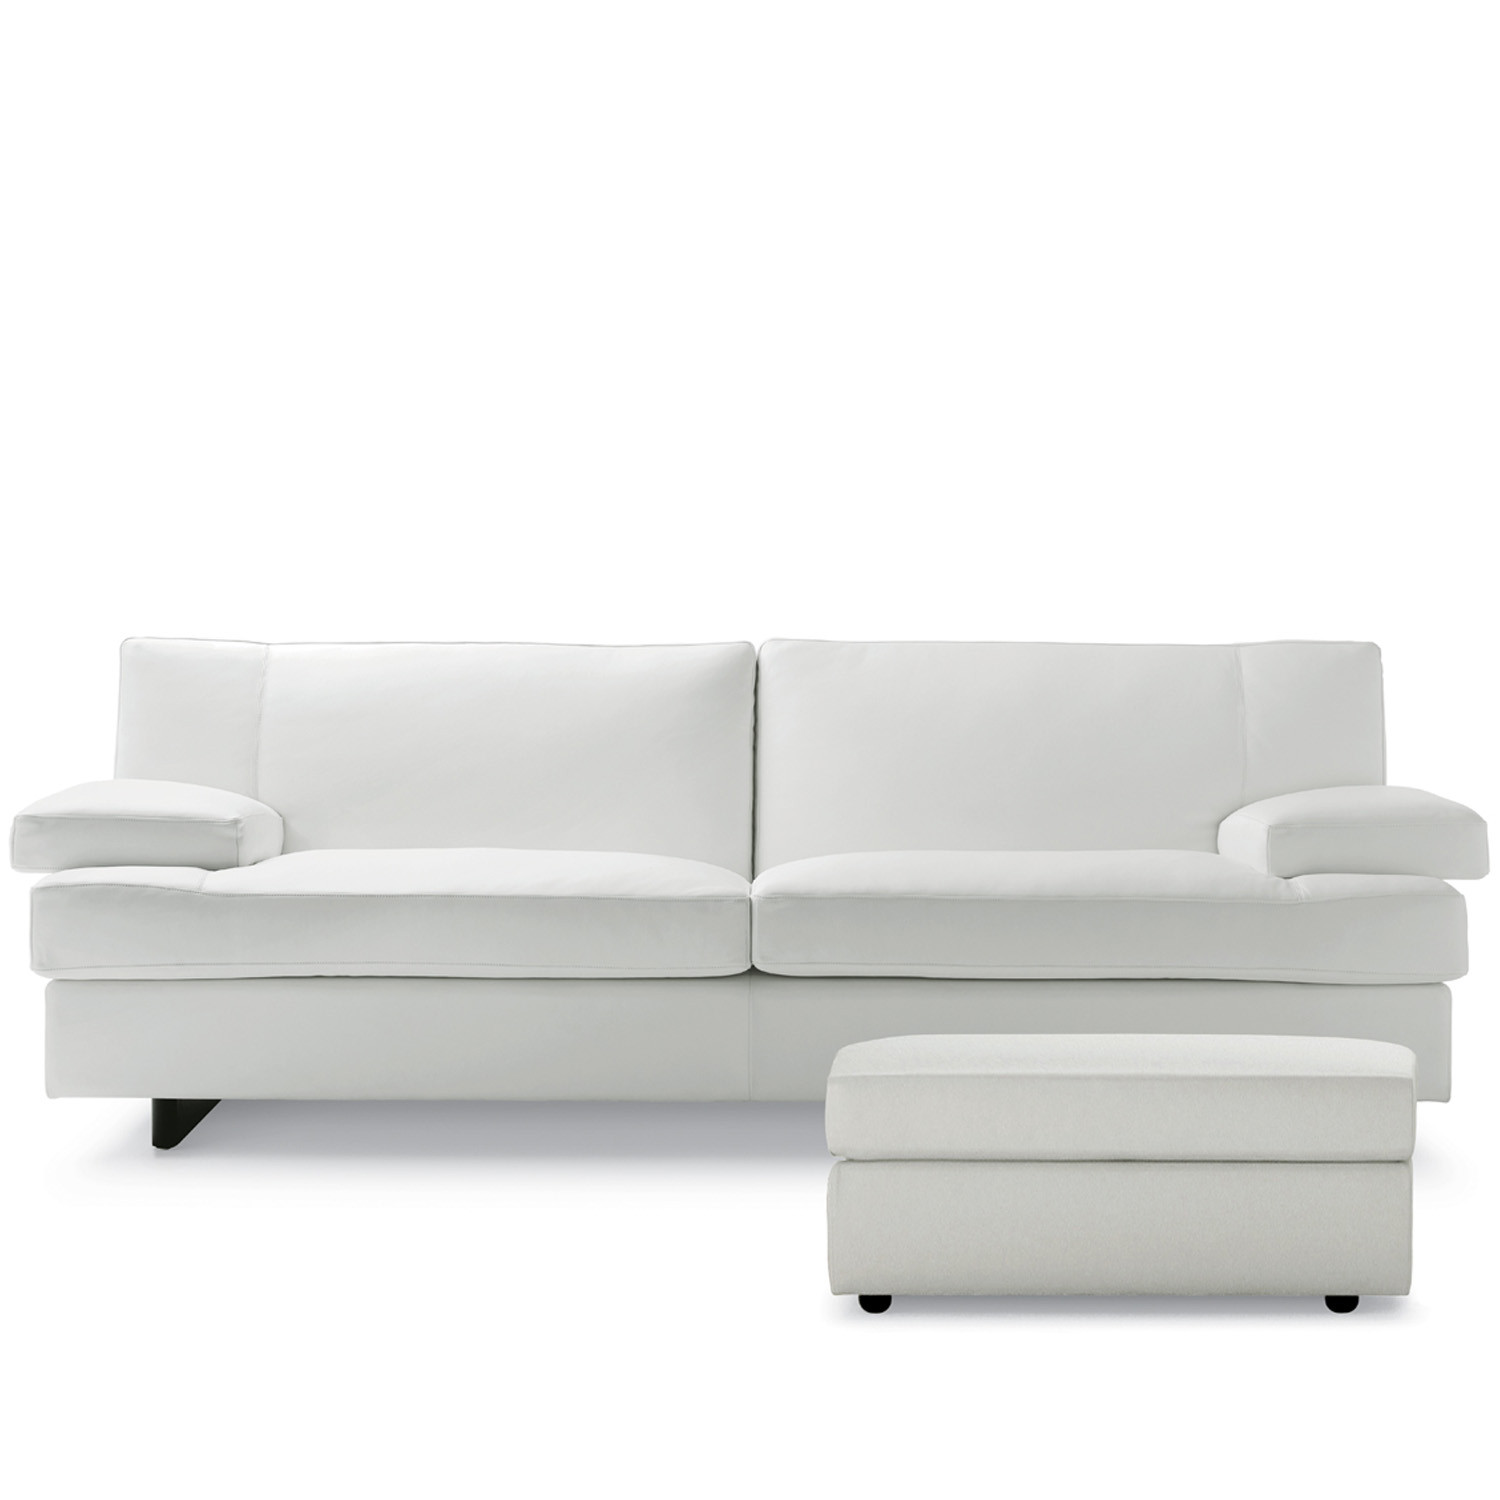 Eskilo Sofa and footrest